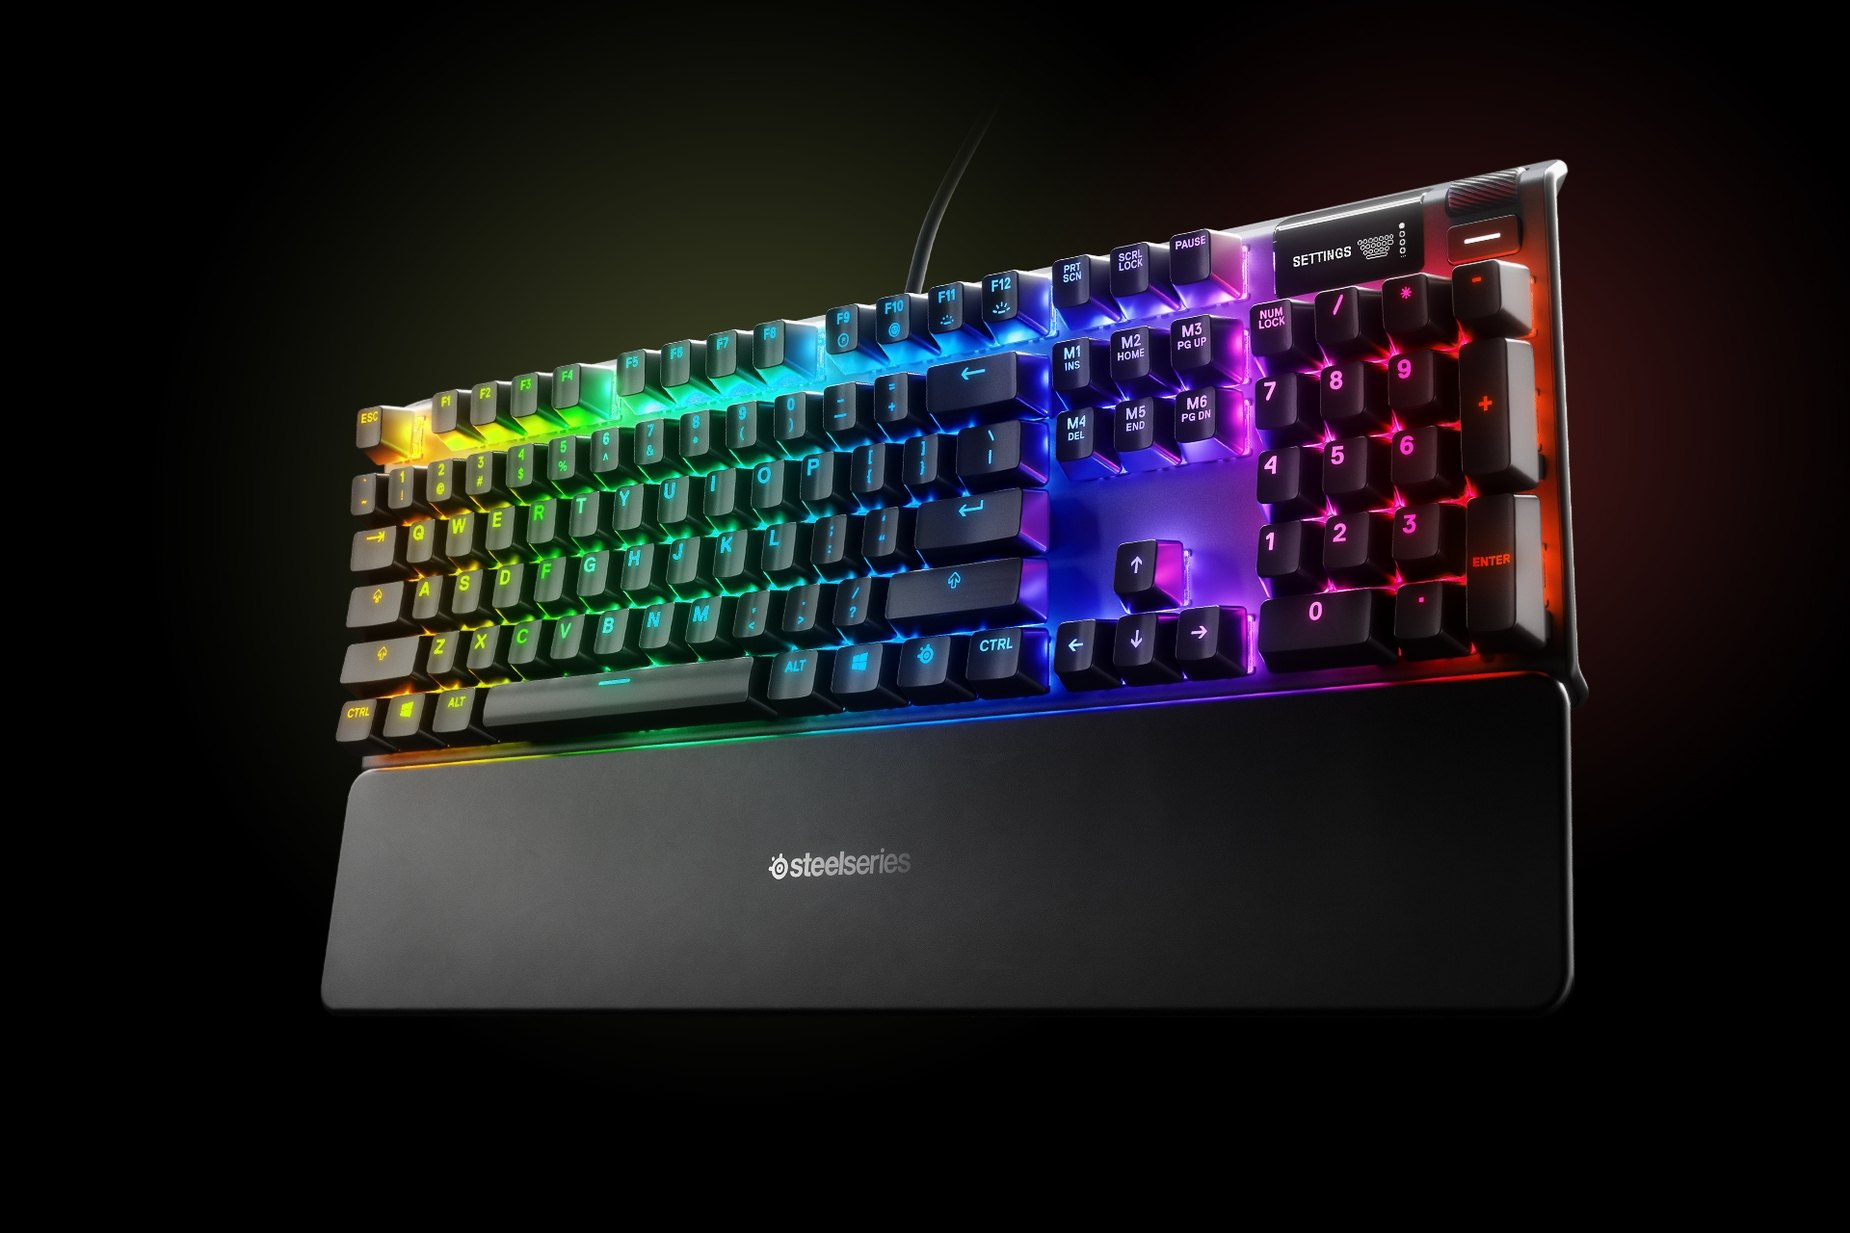 Thai - Apex 7 (Blue Switch) gaming keyboard with the illumination lit up on dark background, also shows the OLED screen and controls used to change settings and adjust audio